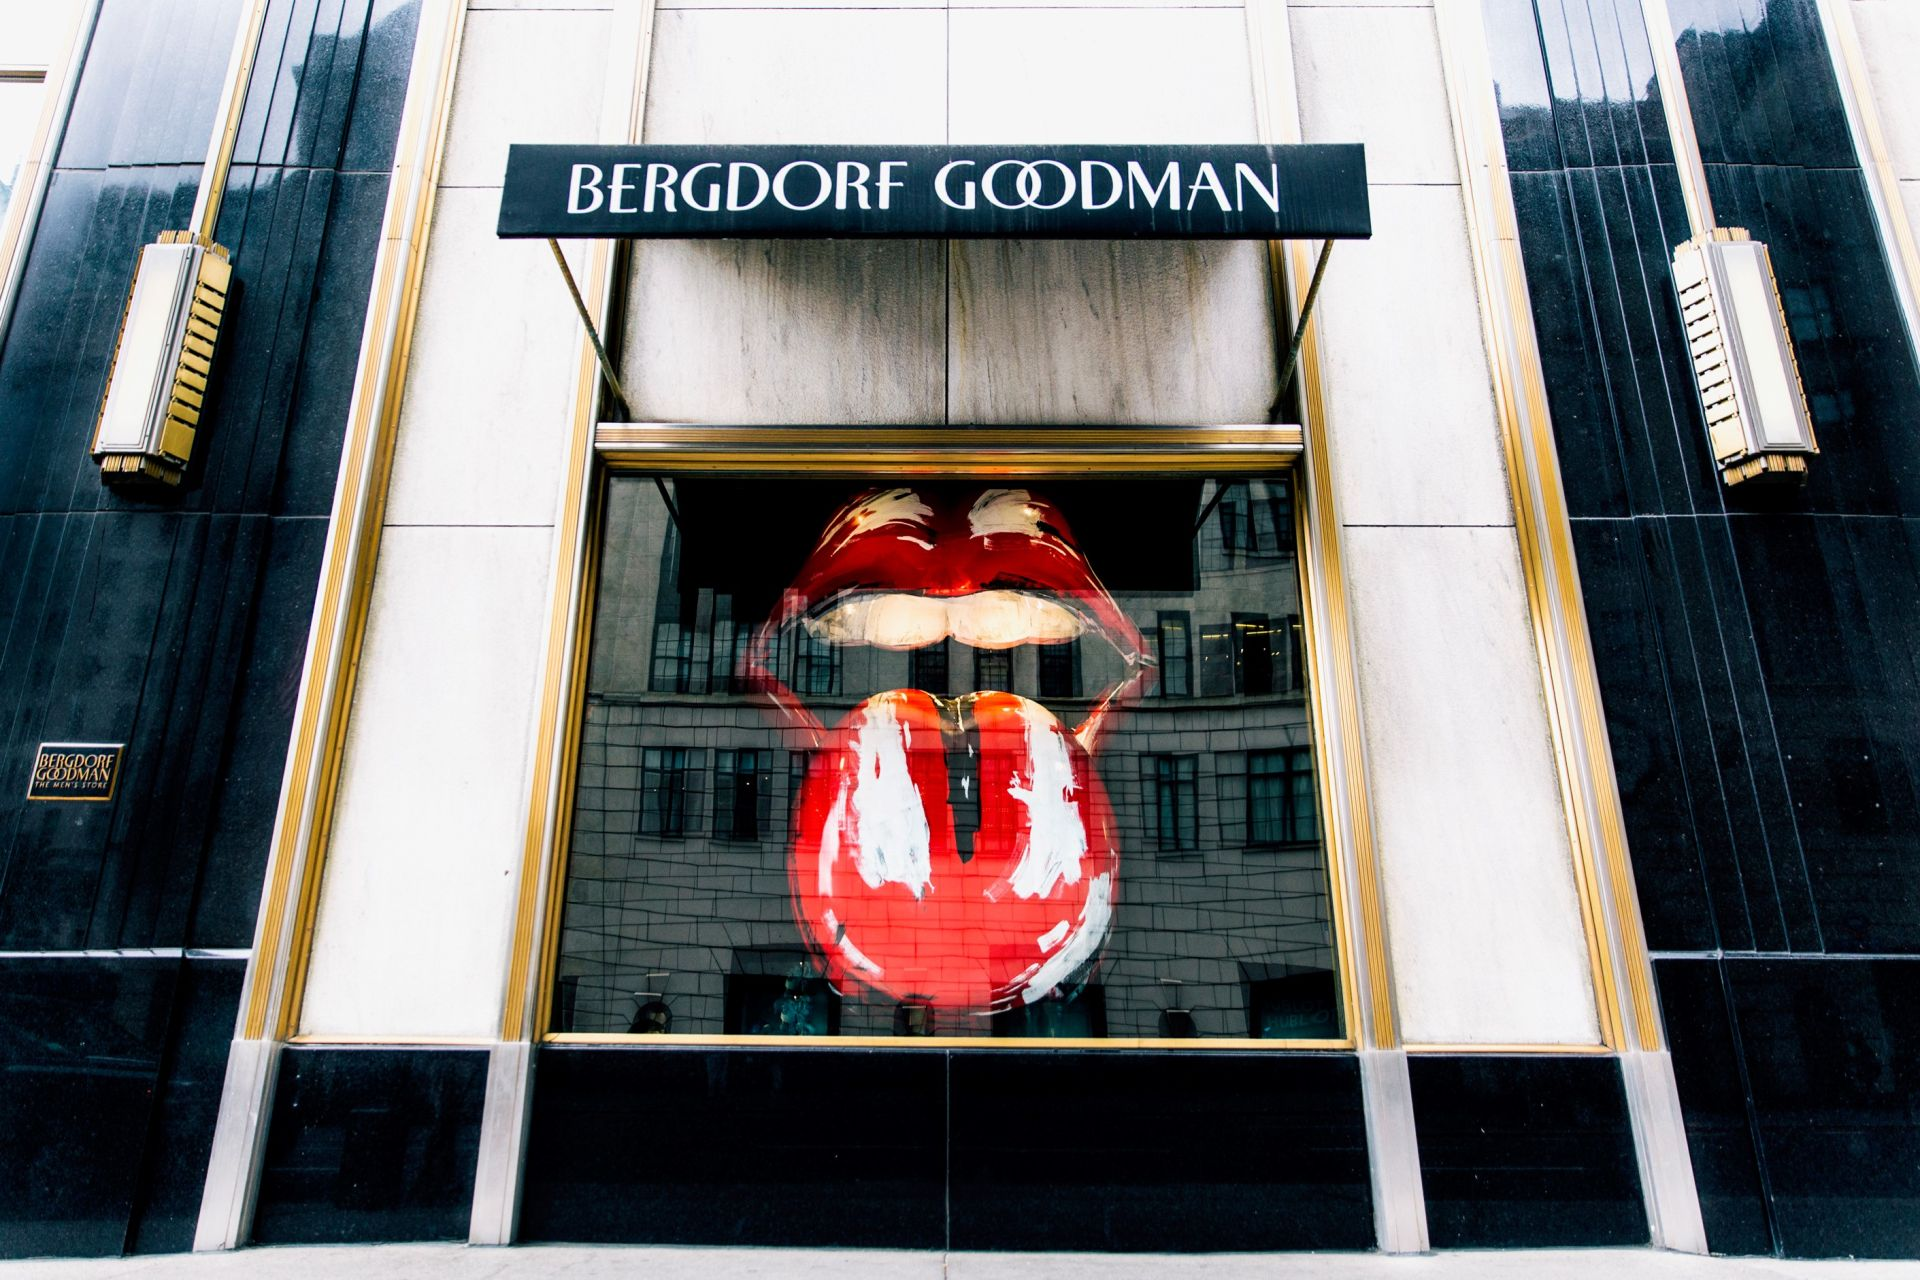 The Rolling Stones Get A Gig With An Unlikely Retail Partner